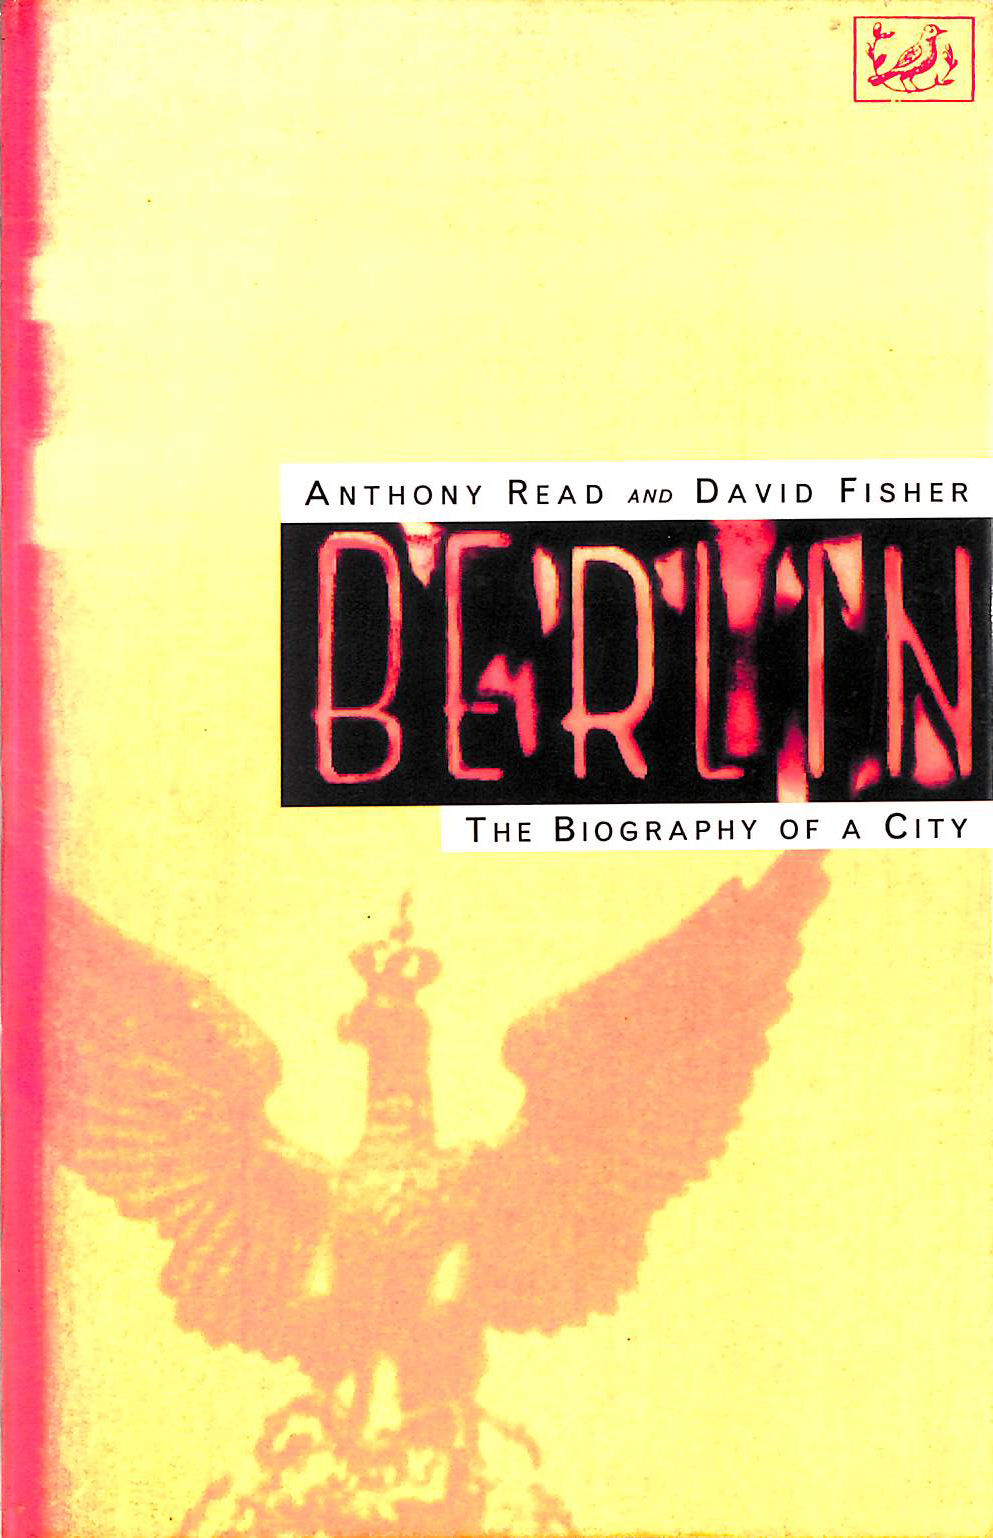 Image for Berlin: The Biography of a City